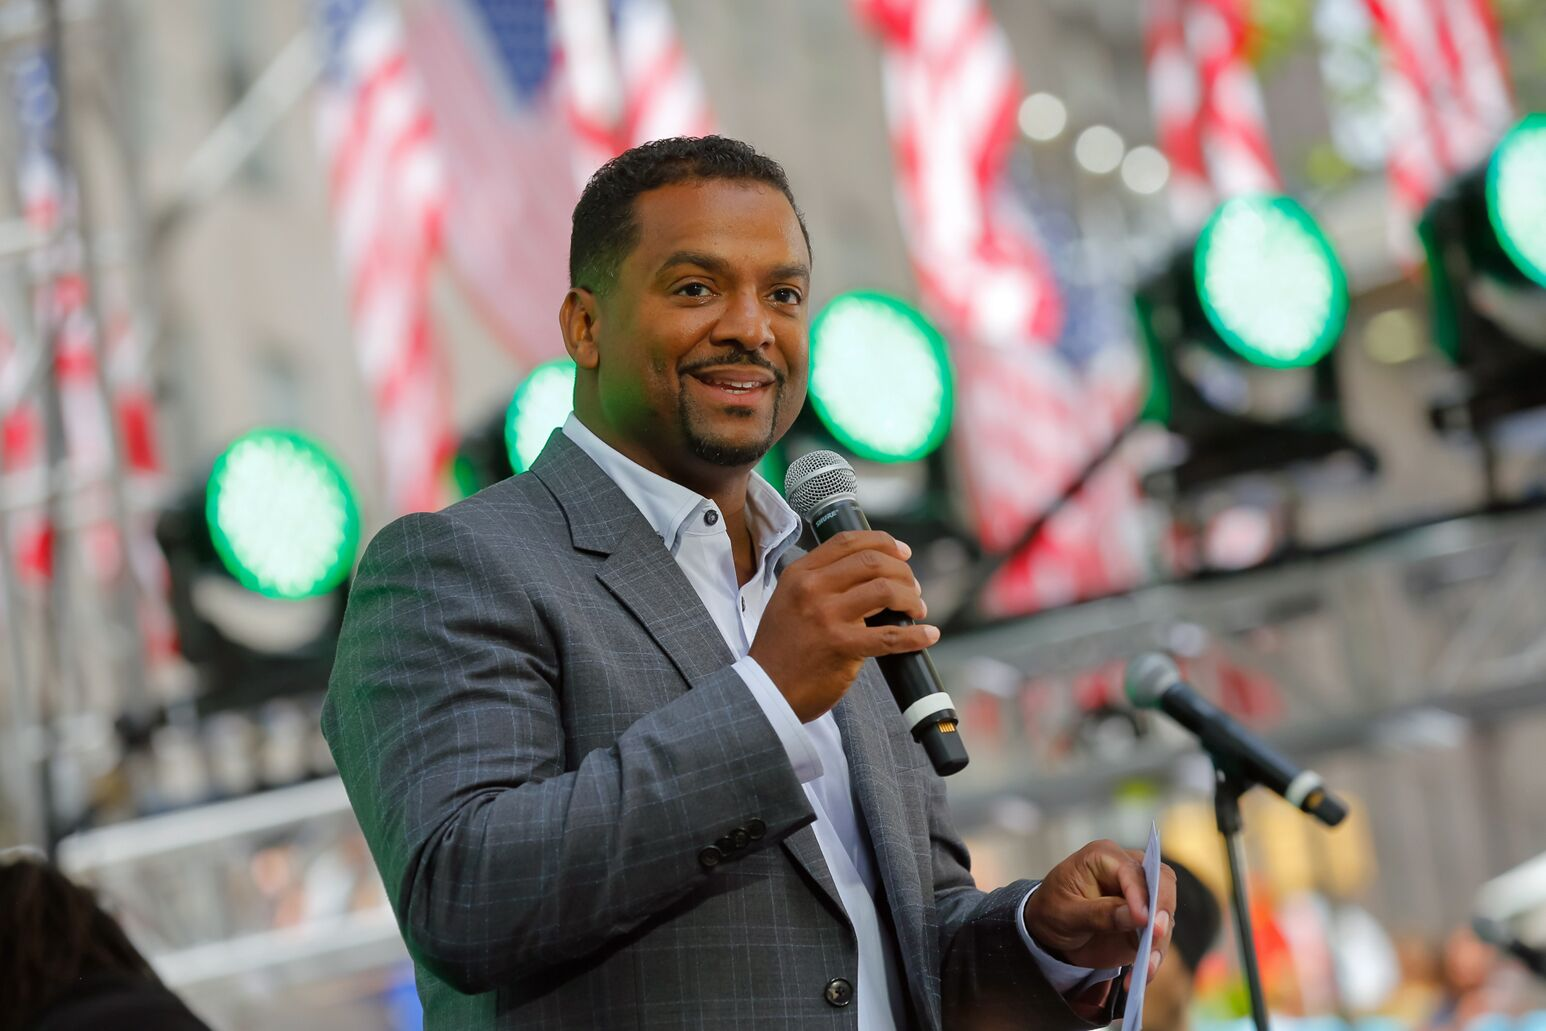 Alfonso Ribeiro served as emcee